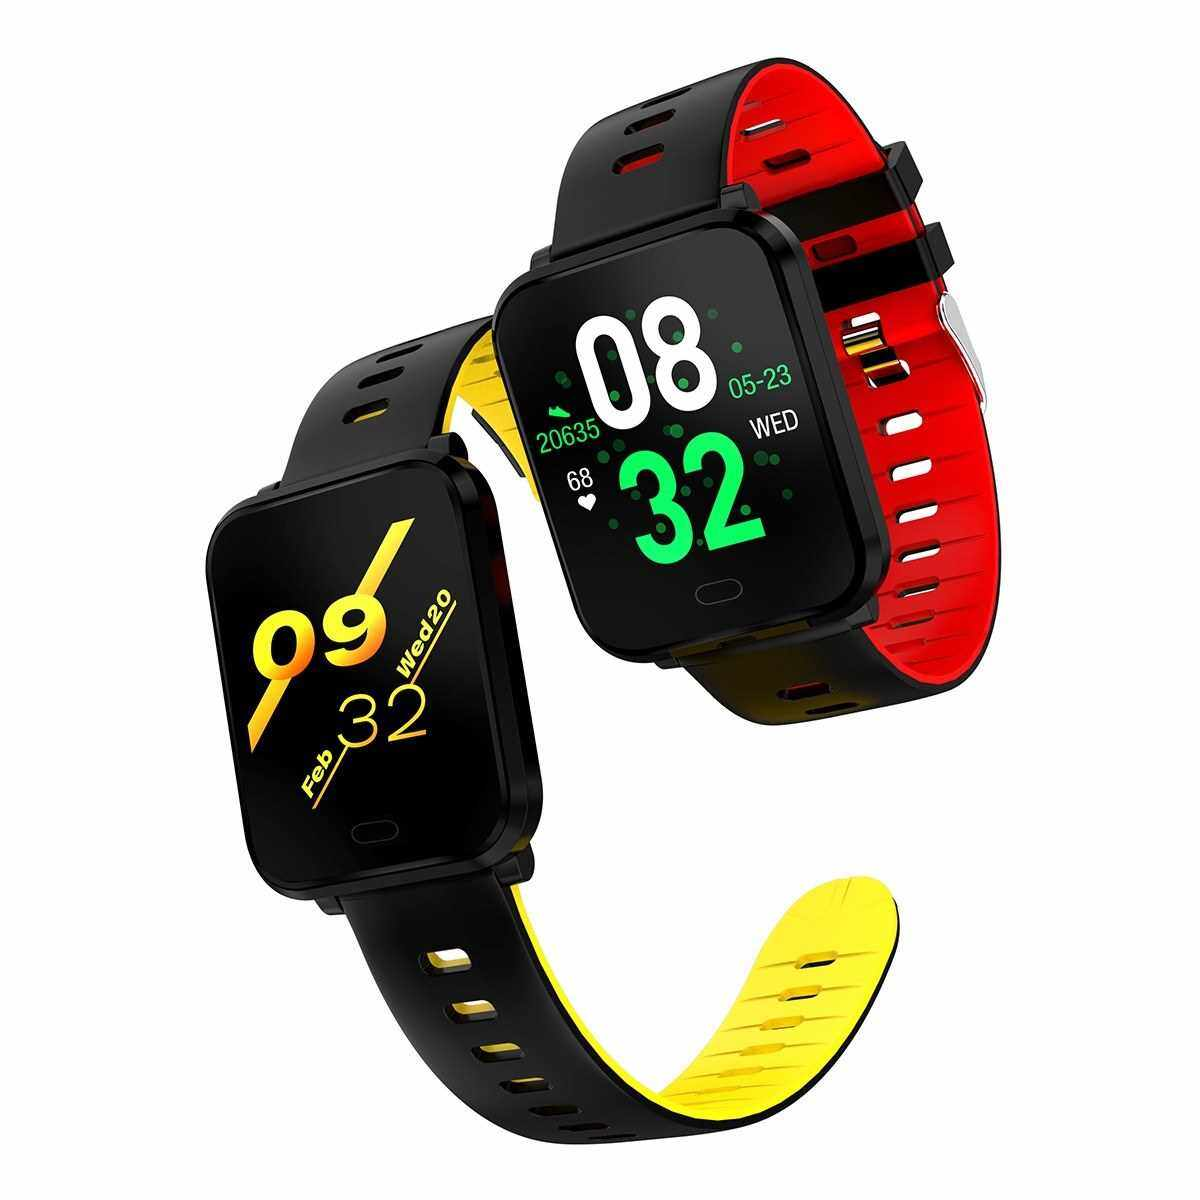 Best Selling K10 PLUS Smart Bracelet 1.3-Inch Square Face Smart Watch IP68 Waterproof Sport Smartwatch with Heart Rate/Blood Pressure Monitor Sleep Tracker Multiple Workout Modes Pedometer Notifications Reminder Remote Shutter Alarm Clock Stopwatch for M